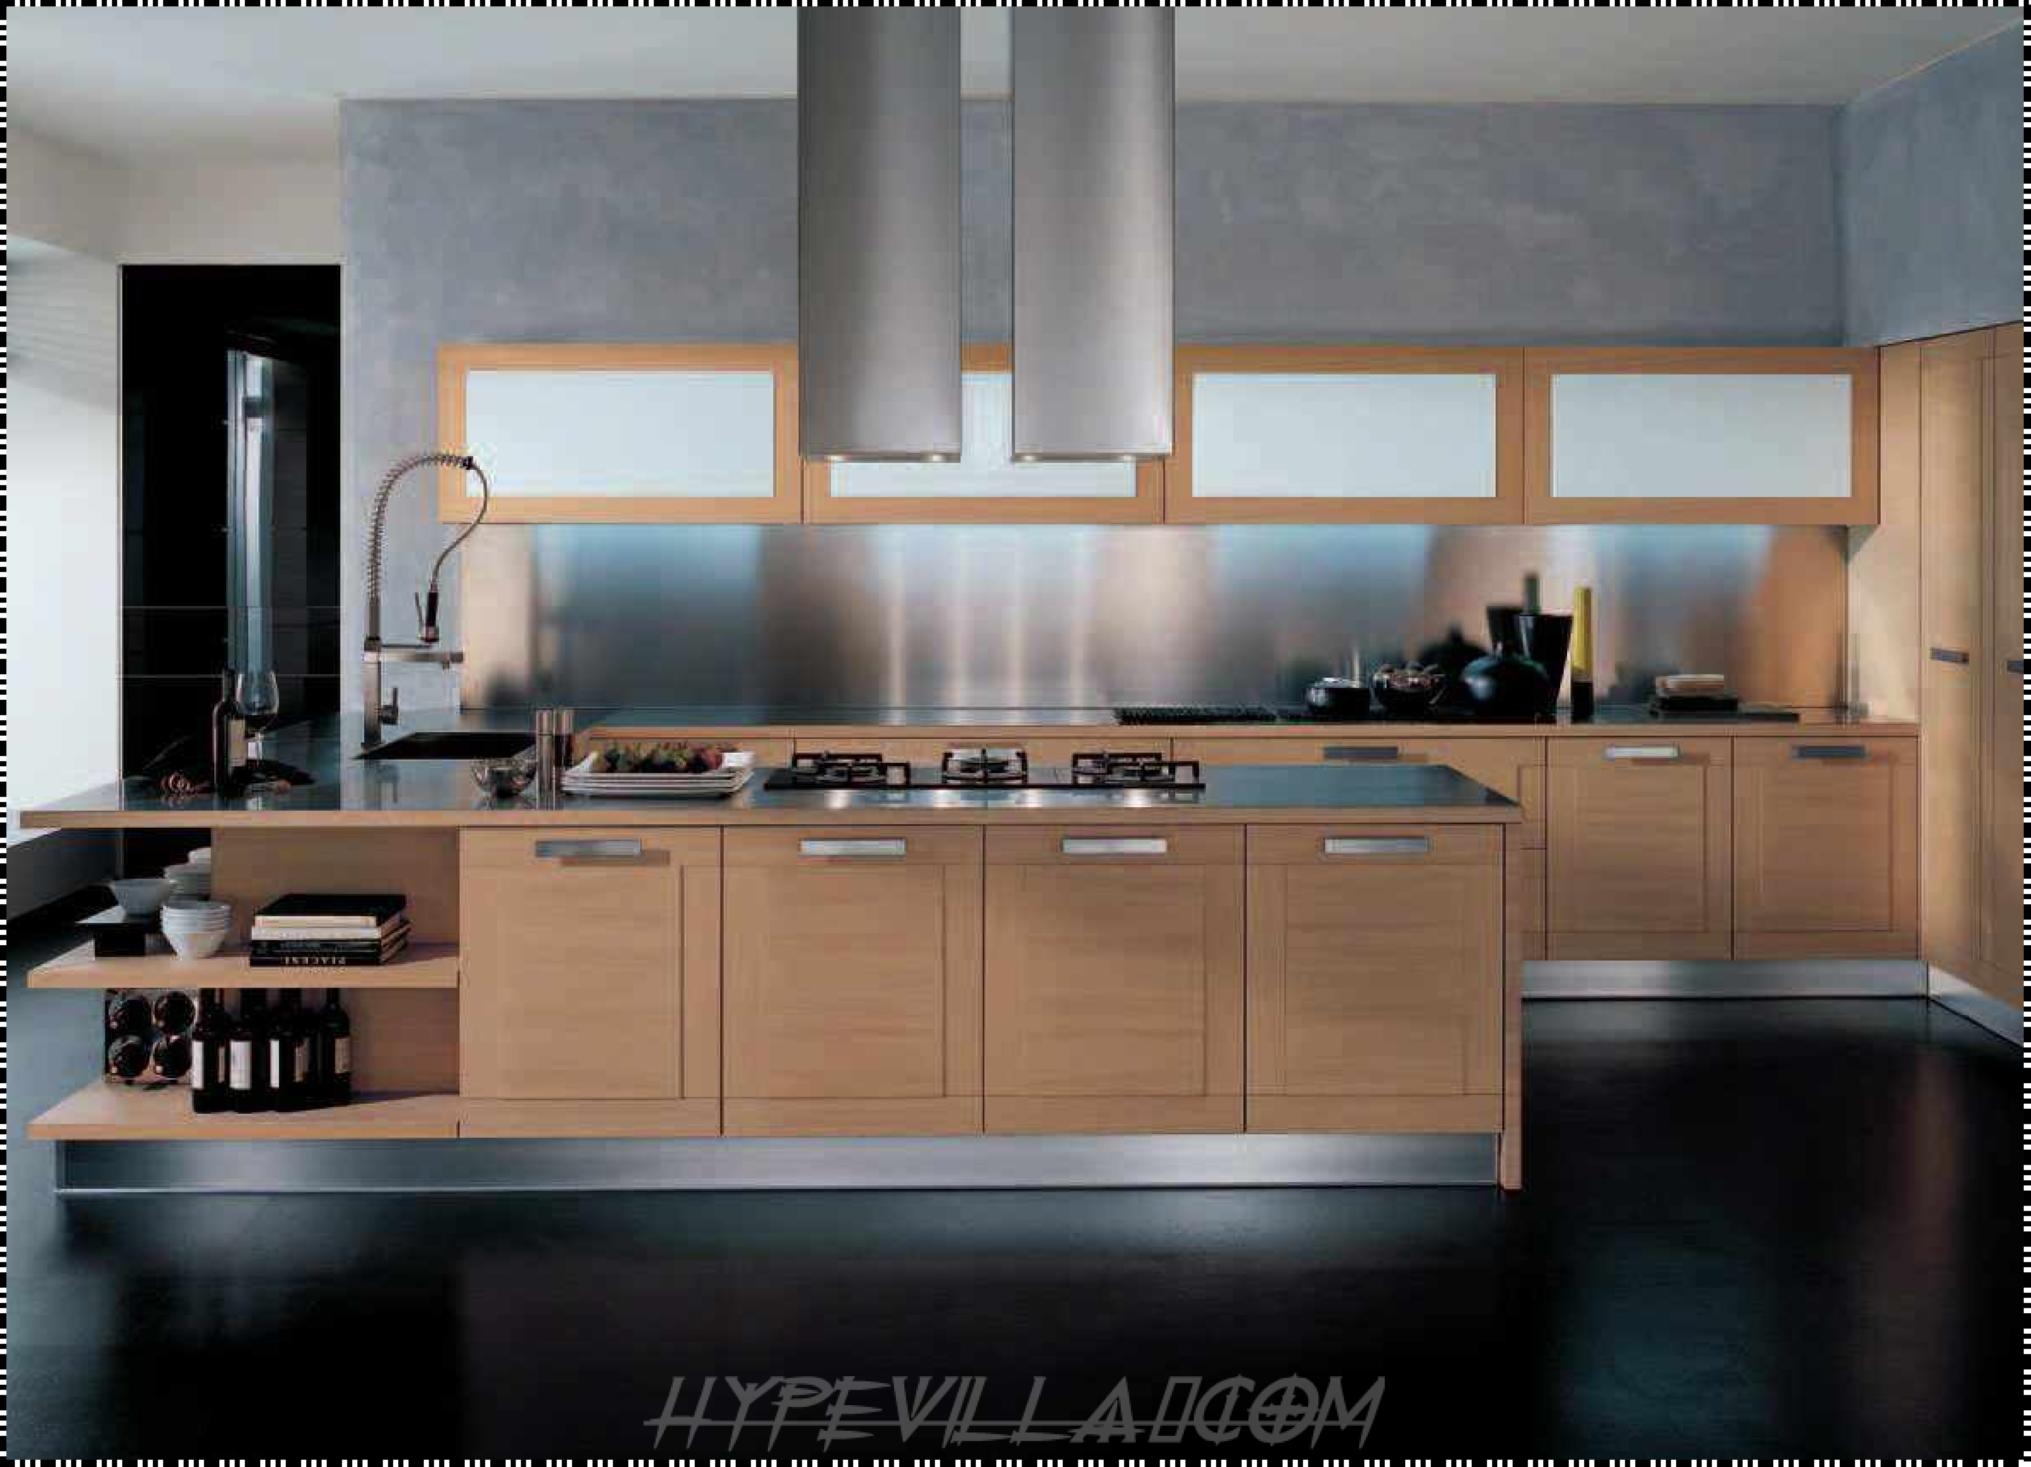 Modern Kitchen Artwork (Image 18 of 31)